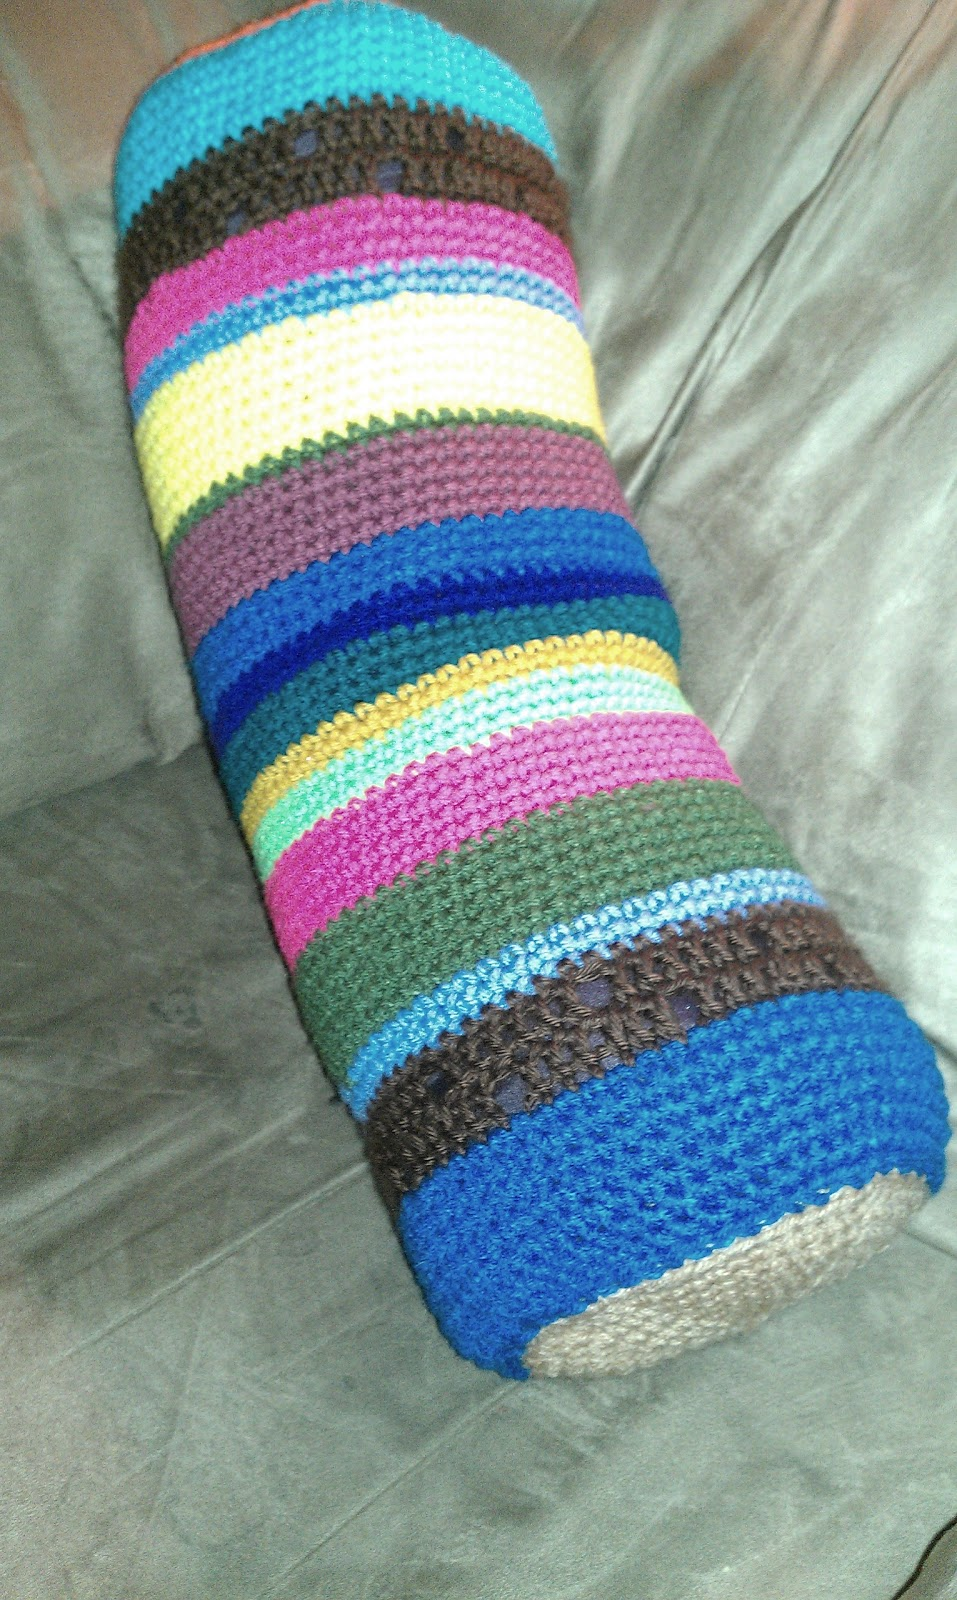 Colorful Crochet Neck Pillow Pattern Pictures - Easy Scarf Knitting ...